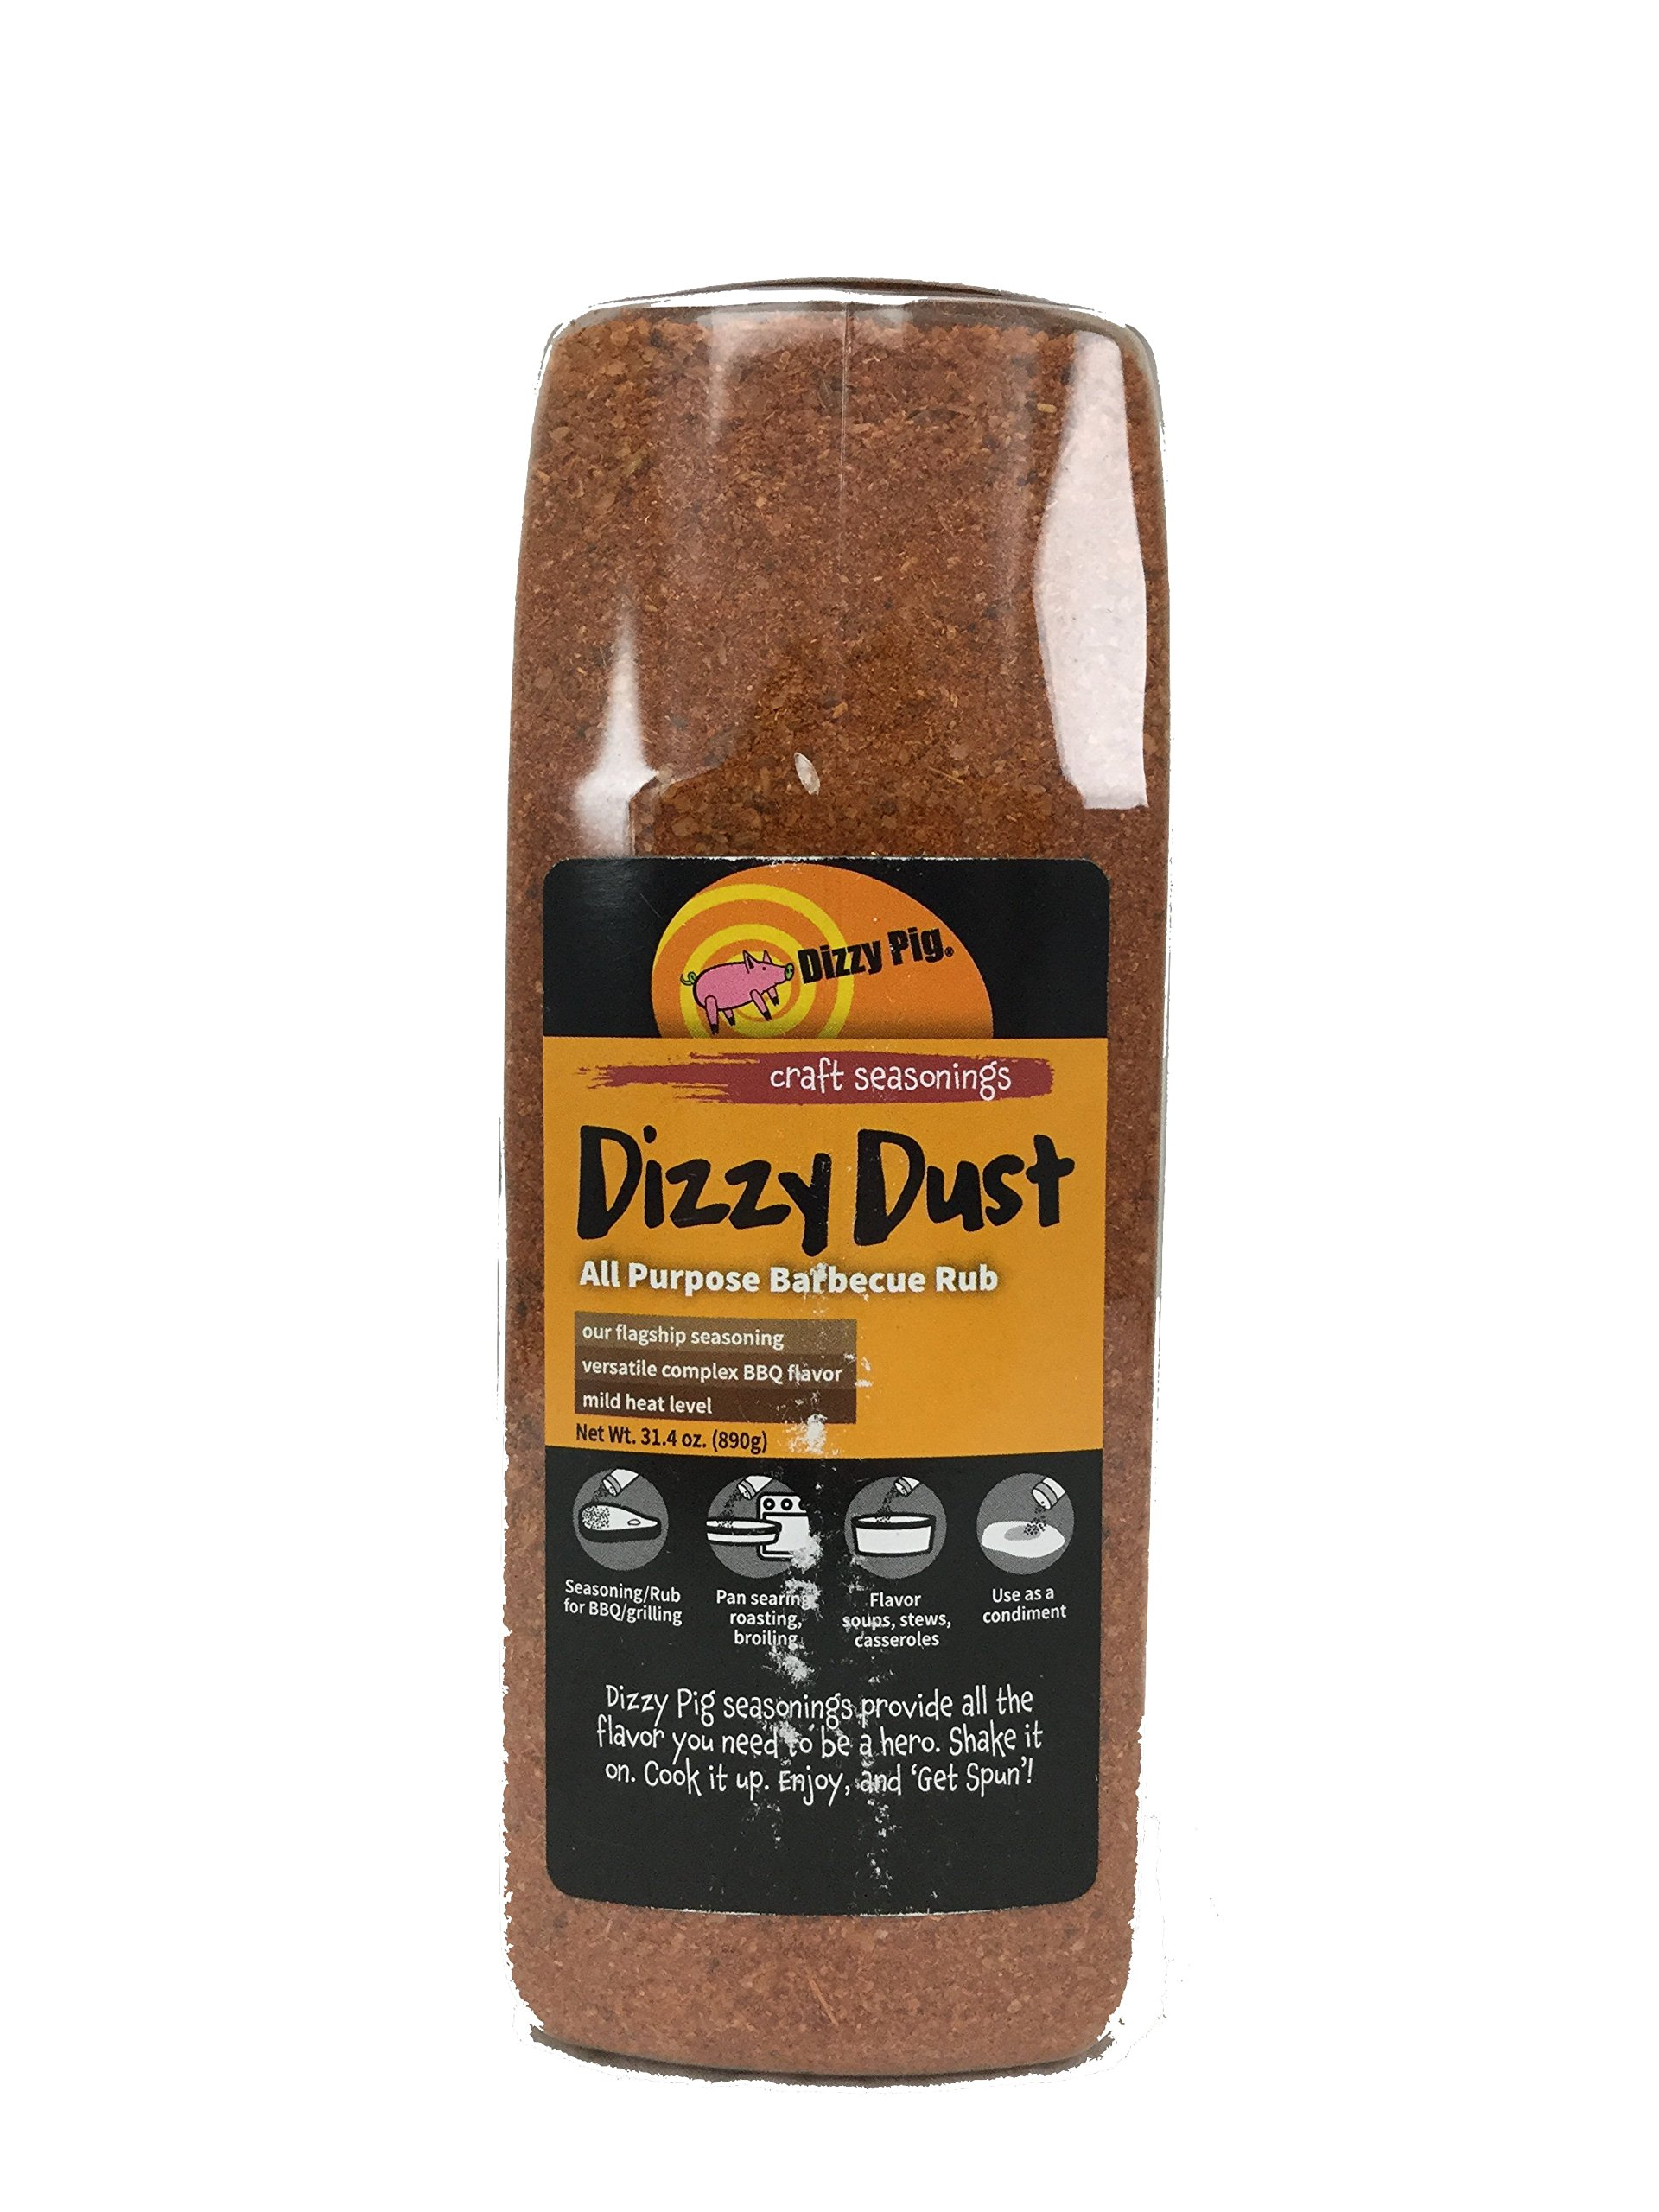 Dizzy Pig BBQ Regular Grind Rub Spice - 32 Ounce Shaker Bottle by Dizzy Pig (Image #1)